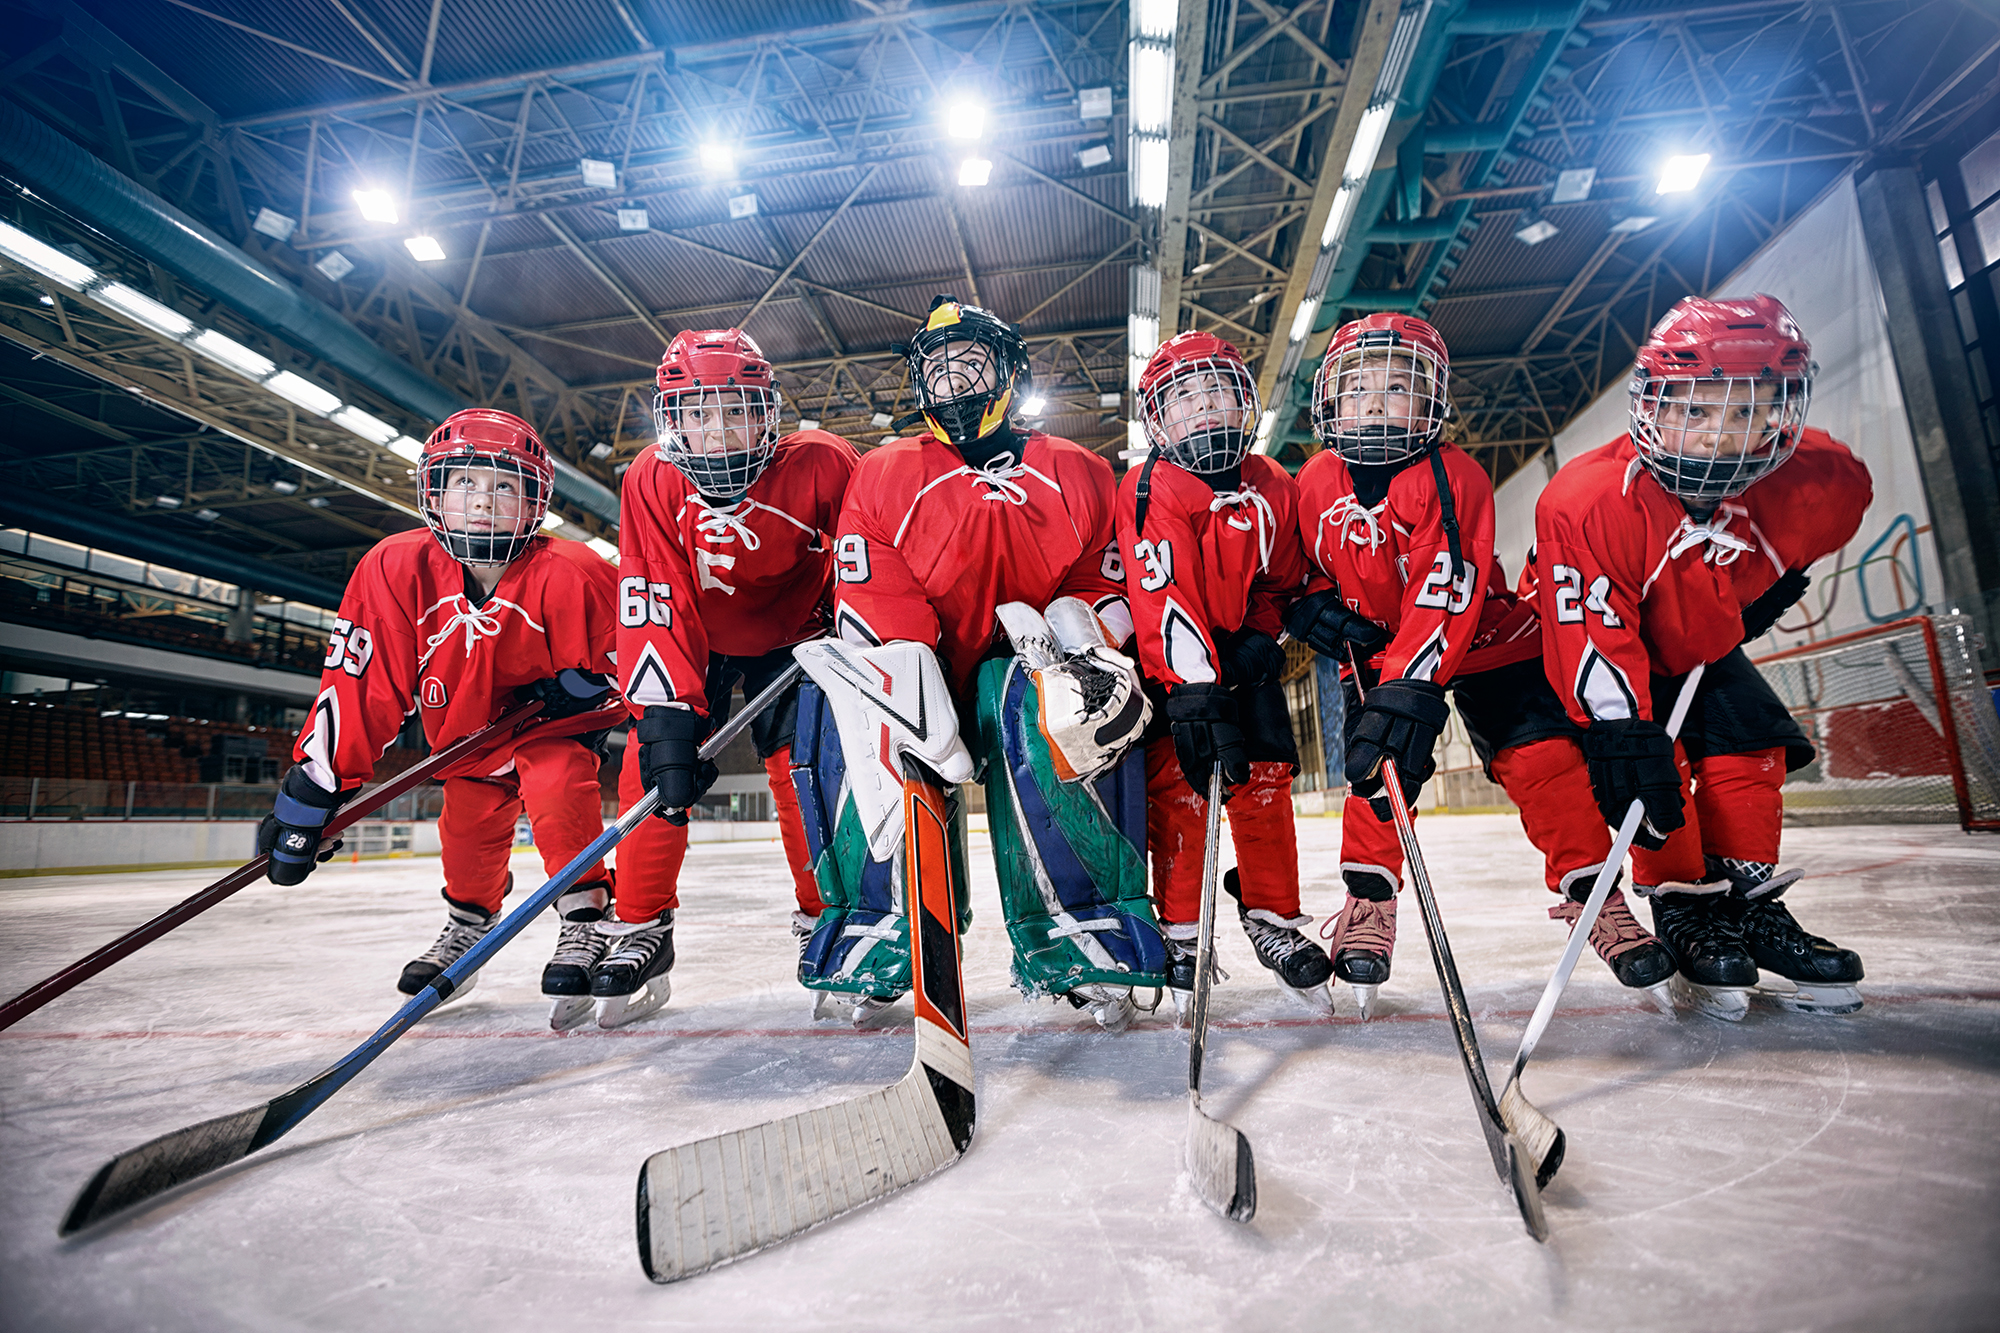 Youth hockey team - children play ice hockey